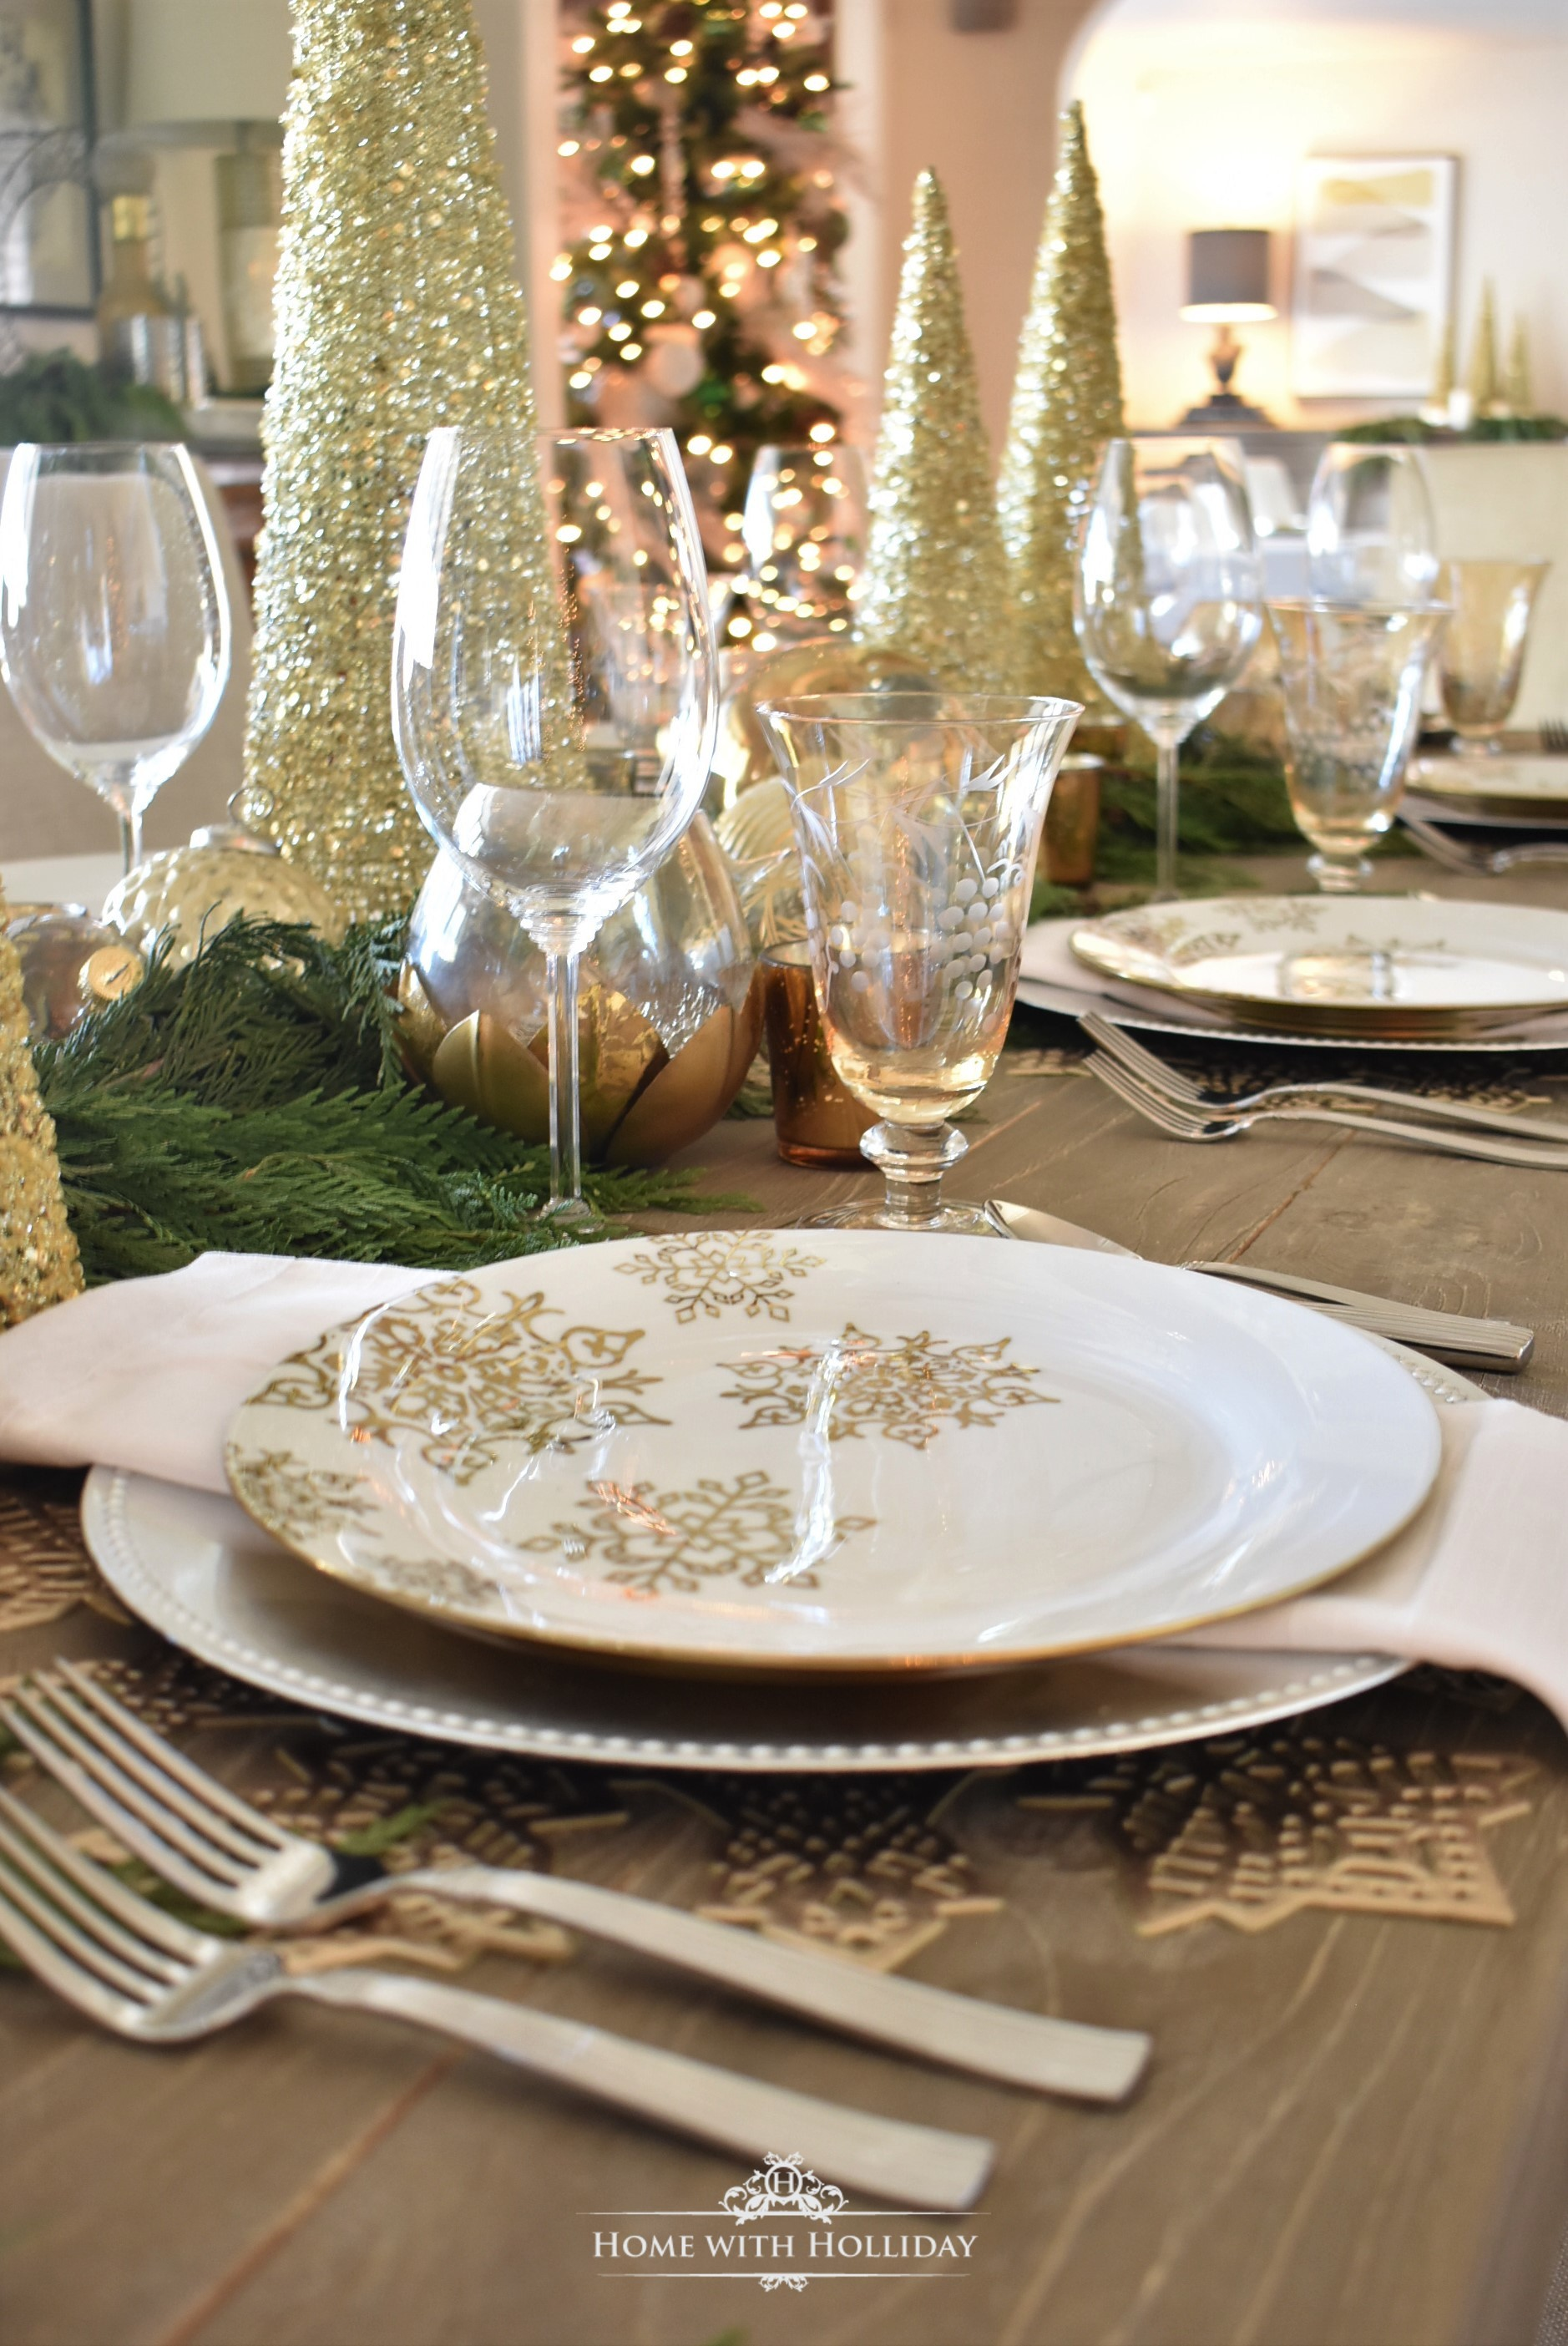 Placesetting for a Gold and Silver Snowflake Christmas Table Setting - Home with Holliday